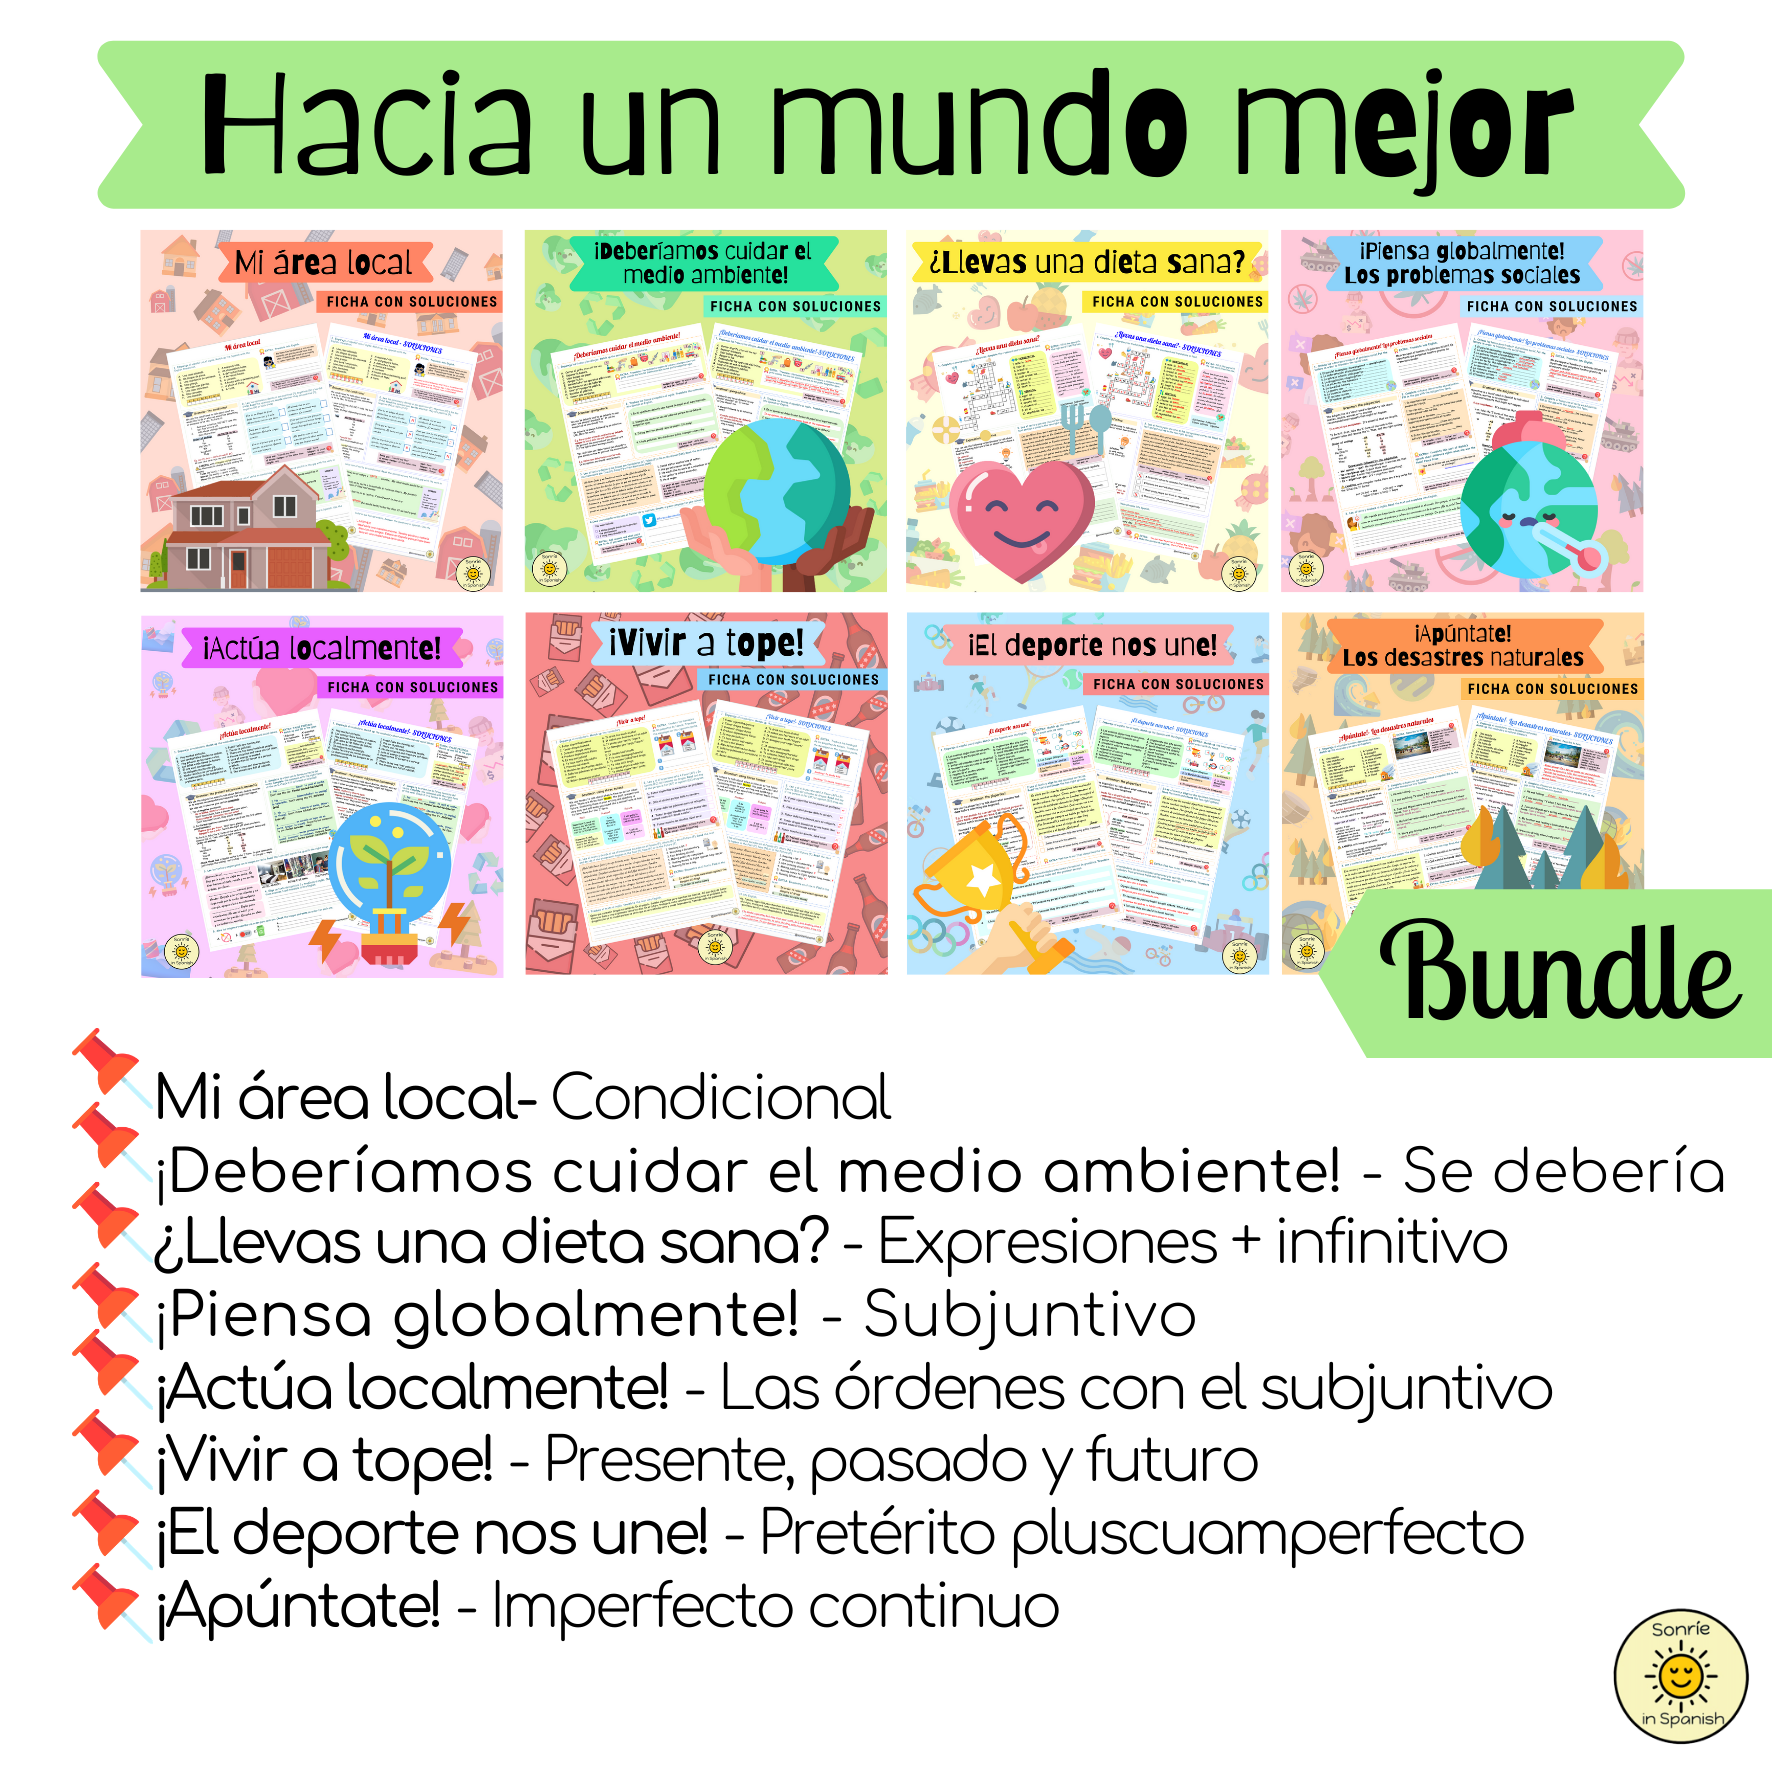 Hacia un mundo mejor. Pack de fichas con soluciones sobre el tema del medio ambiente y los problemas sociales. Spanish GCSE bundle on the topic of Environment/ Social issues. Worksheets with answers